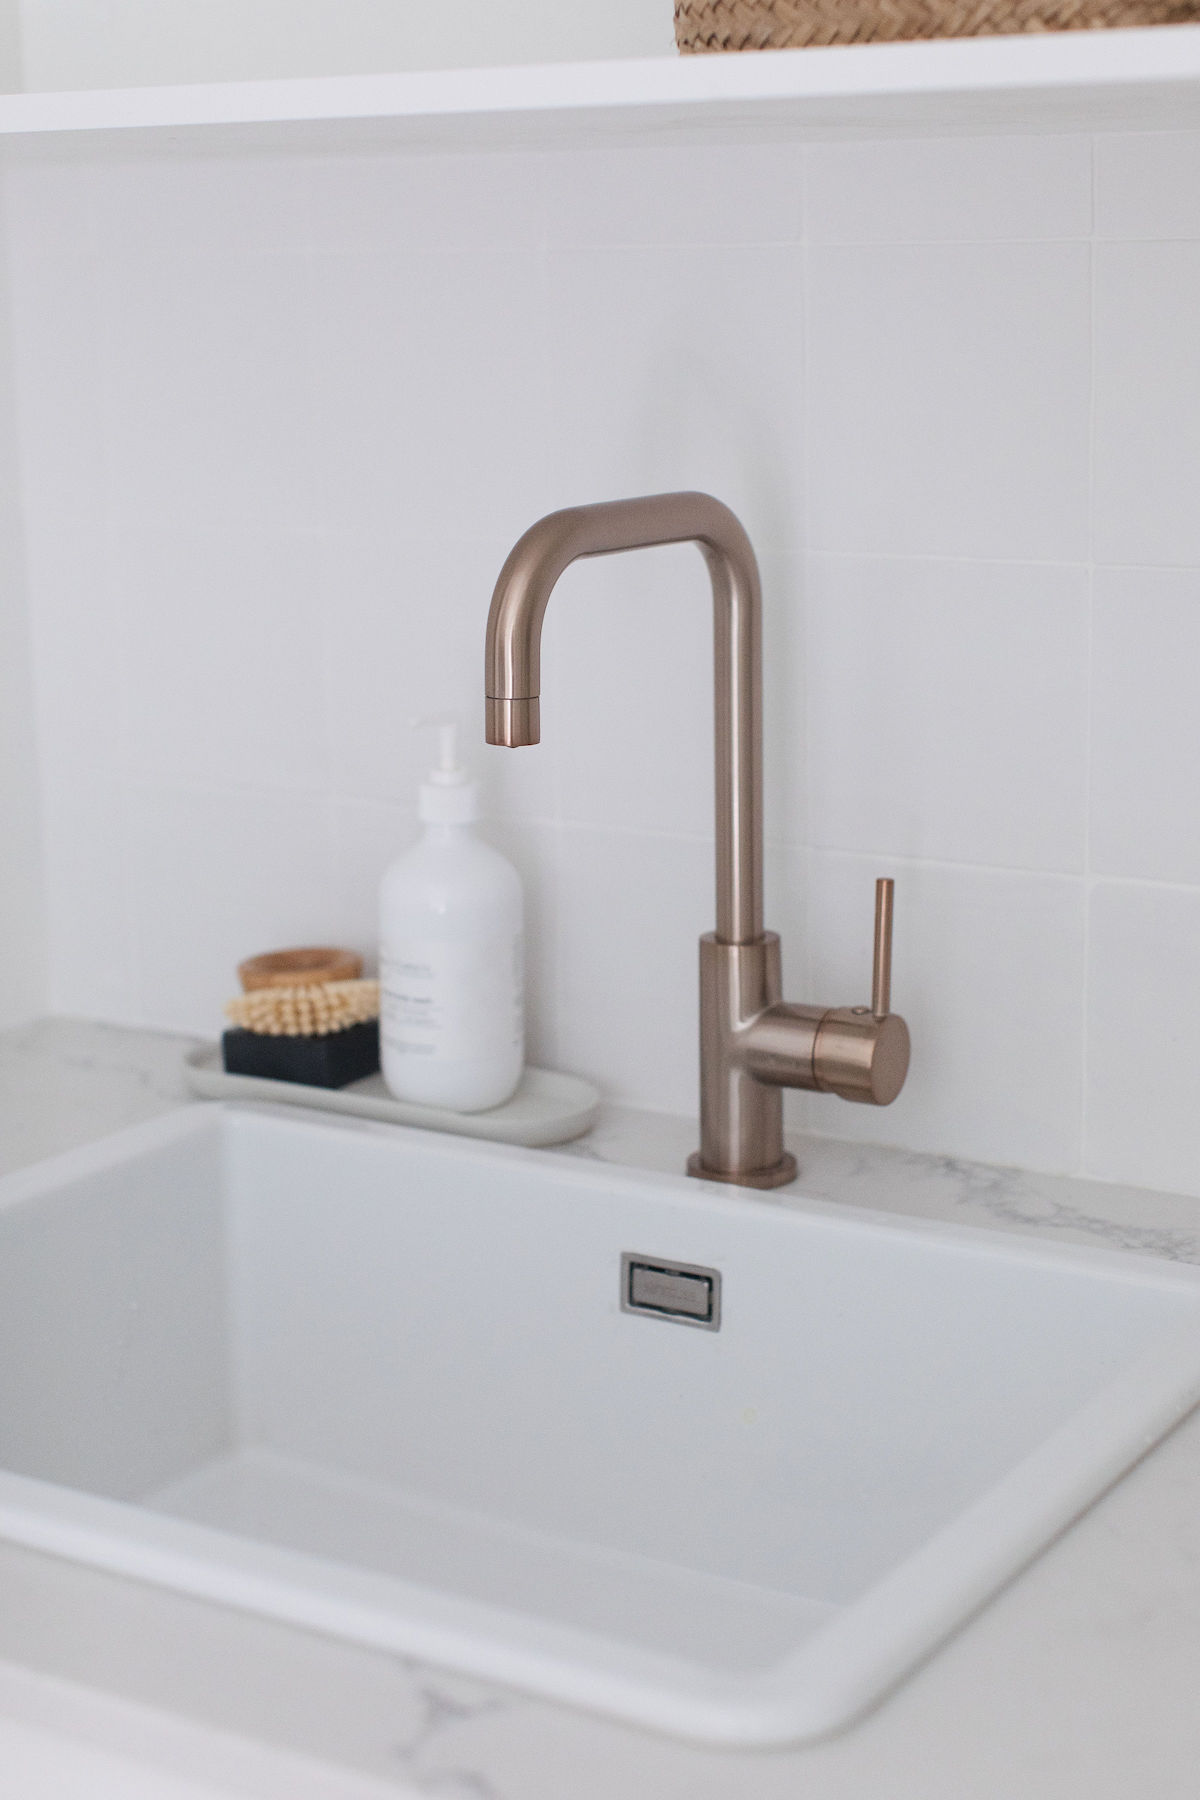 Rose gold laundry tap